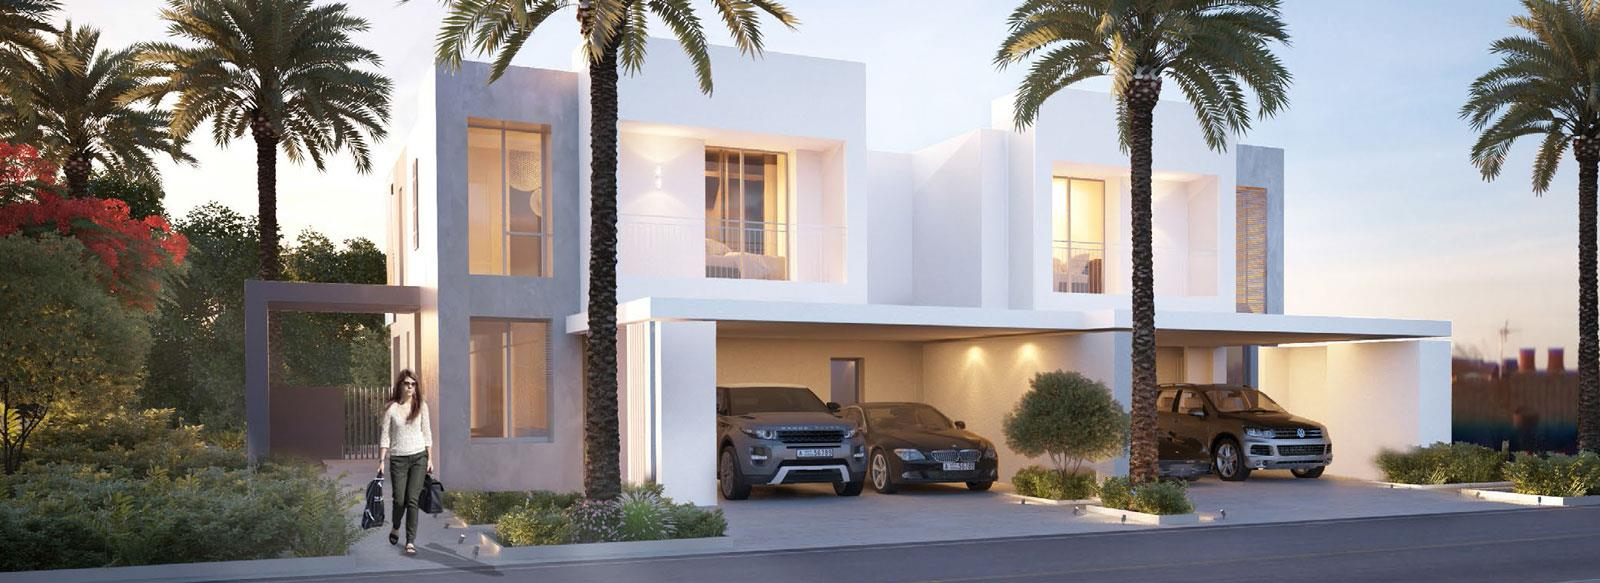 Easy 30/10/60 Post Handover Payment Plan,<div>Just 5% as Down Payment</div>